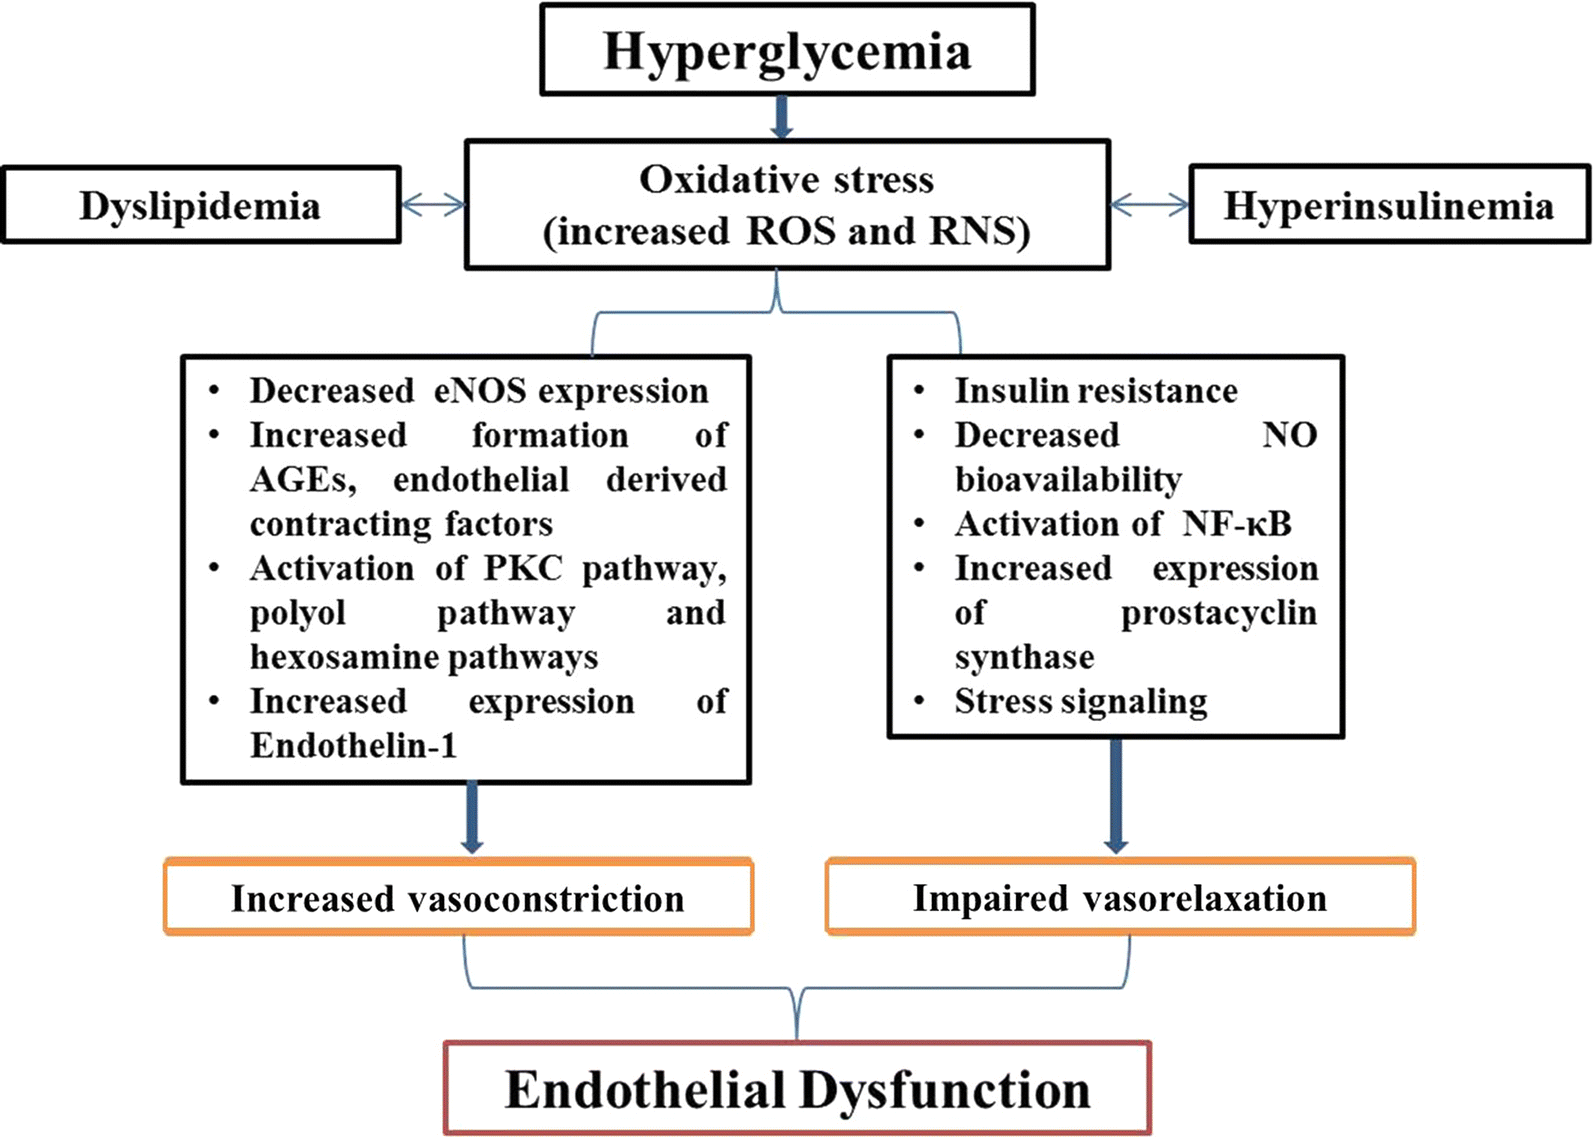 Endothelial dysfunction and platelet hyperactivity in type 2